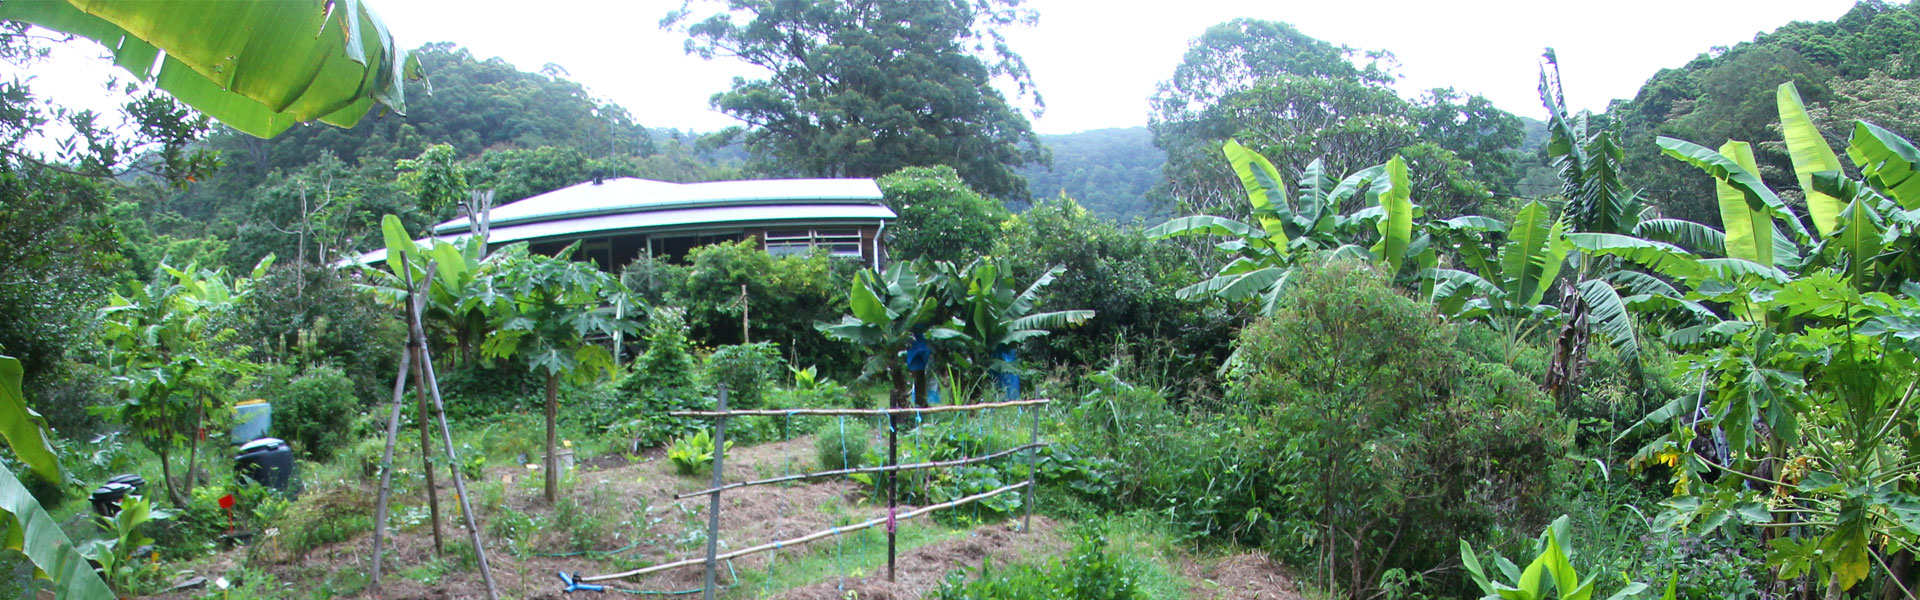 Permaculture Sunshine Coast - Noosa Forest Retreat